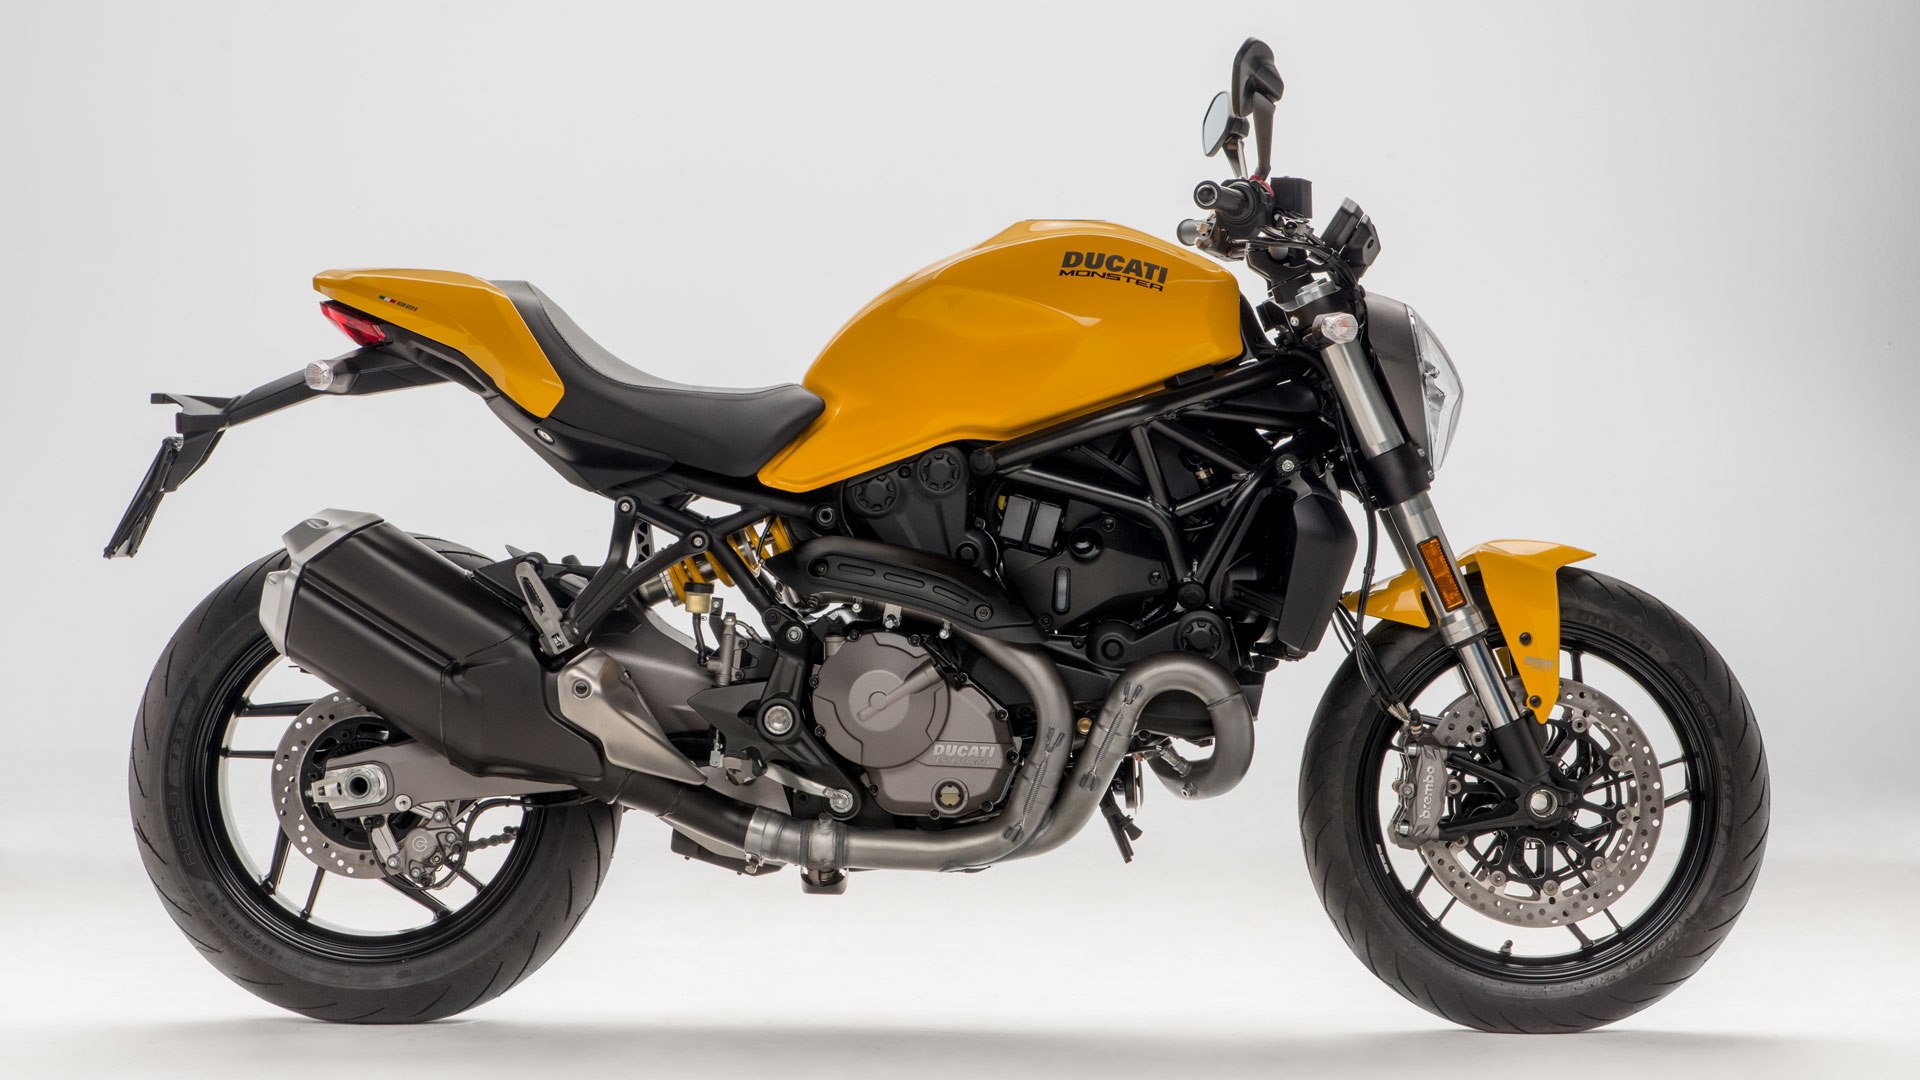 Ducati Monster 821 >> Ducati Monster 821 Naked Motorcycles By Ducati